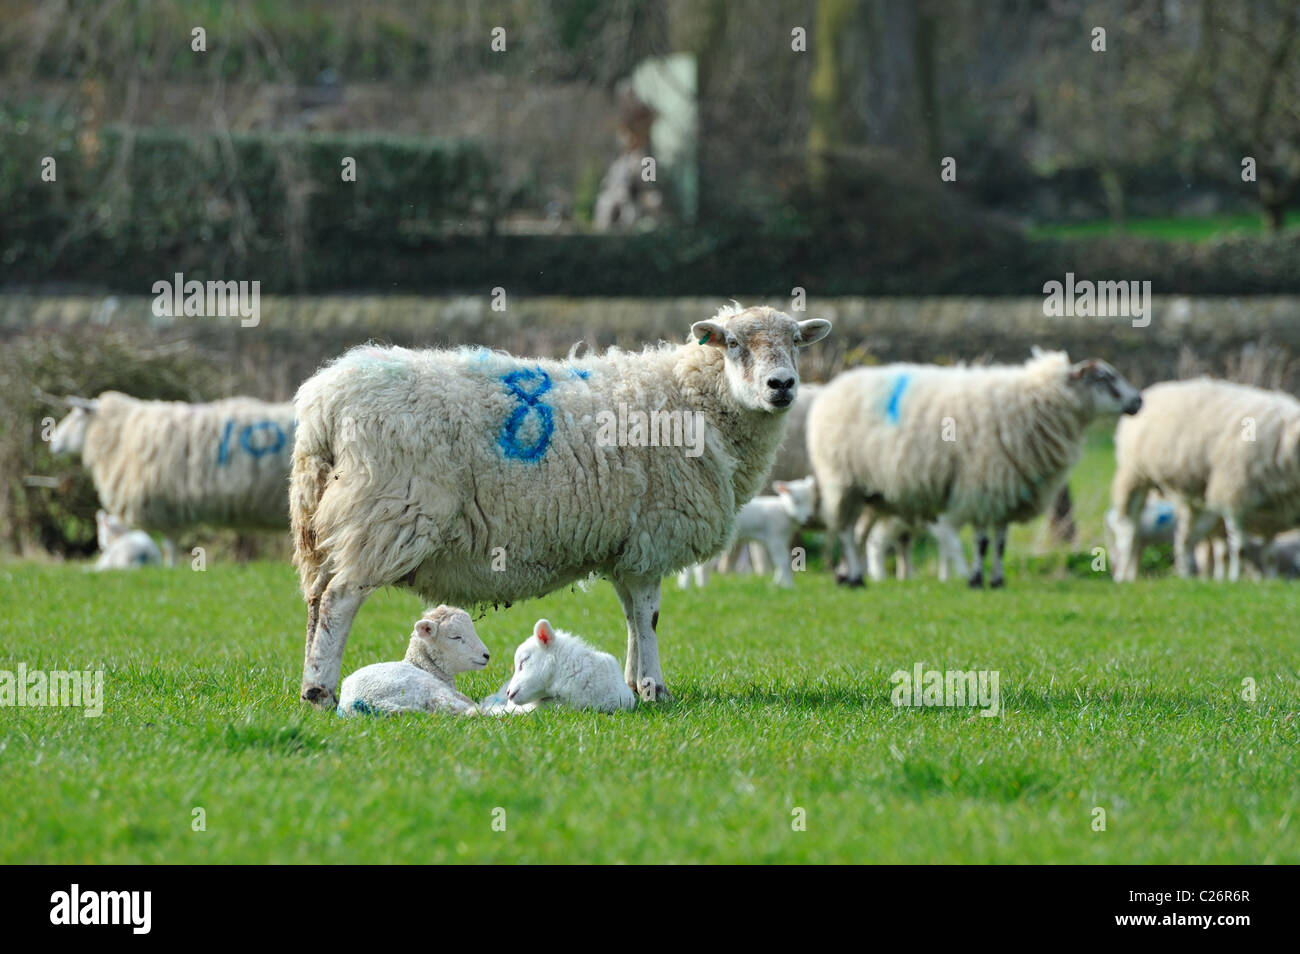 Ewes & Lambs in a field - Stock Image